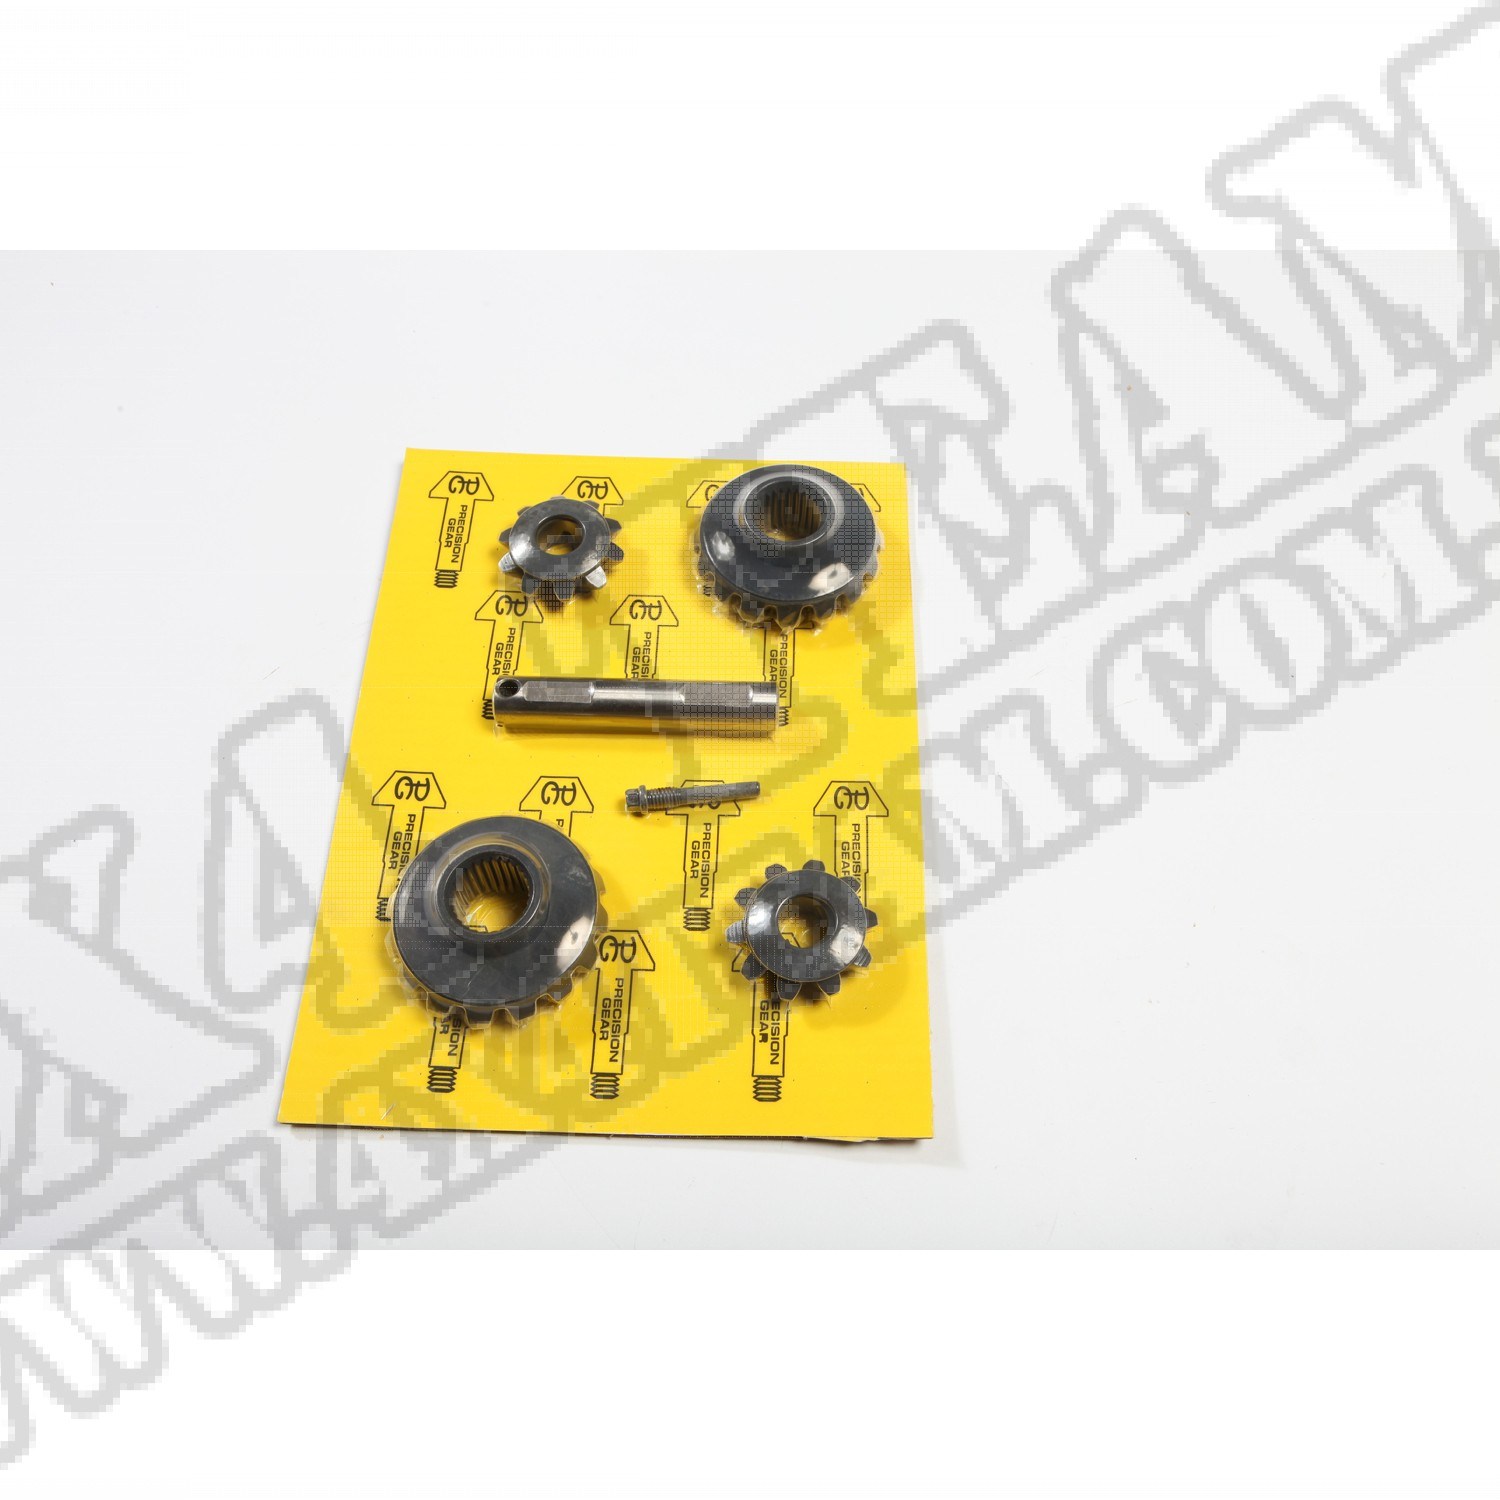 Spider Gear Kit, Early Series, GM 7.5